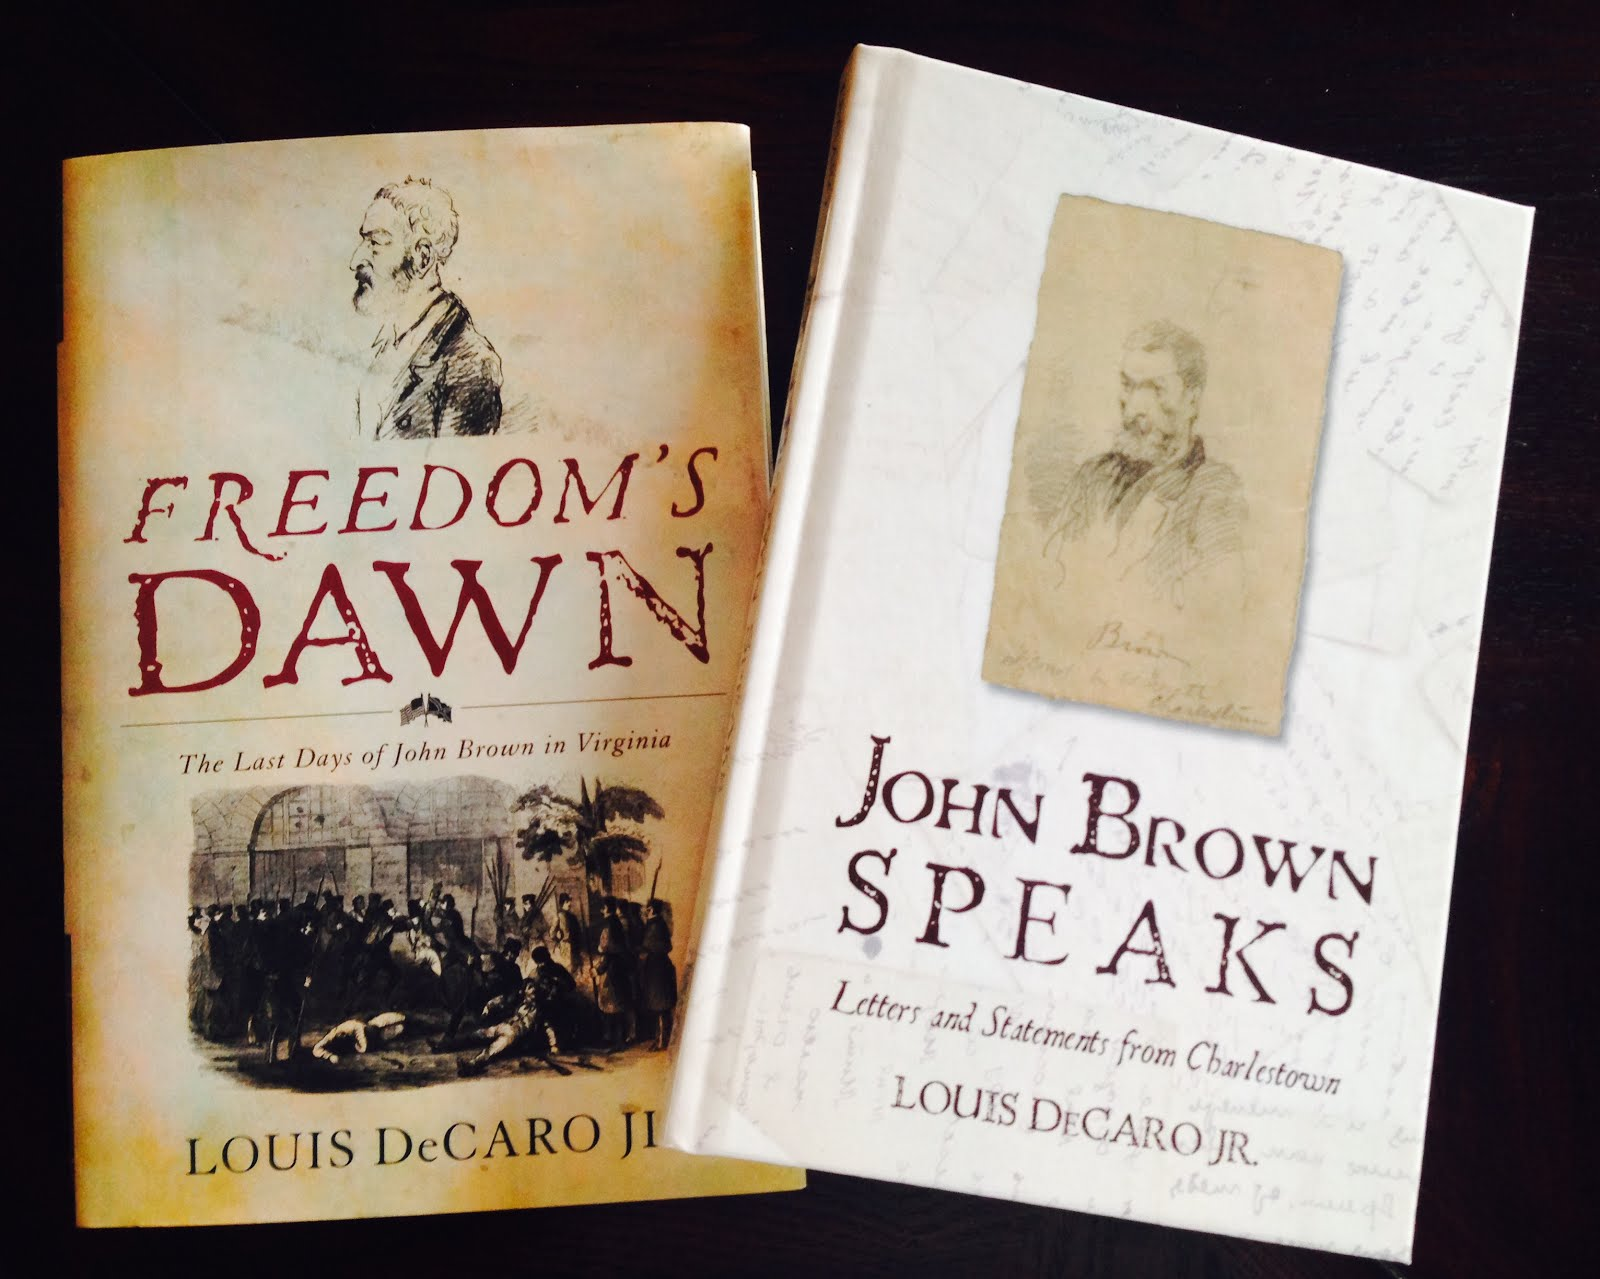 <b><i>Freedom&#39;s Dawn</i> and <i><b>John Brown Speaks</b></i></b>